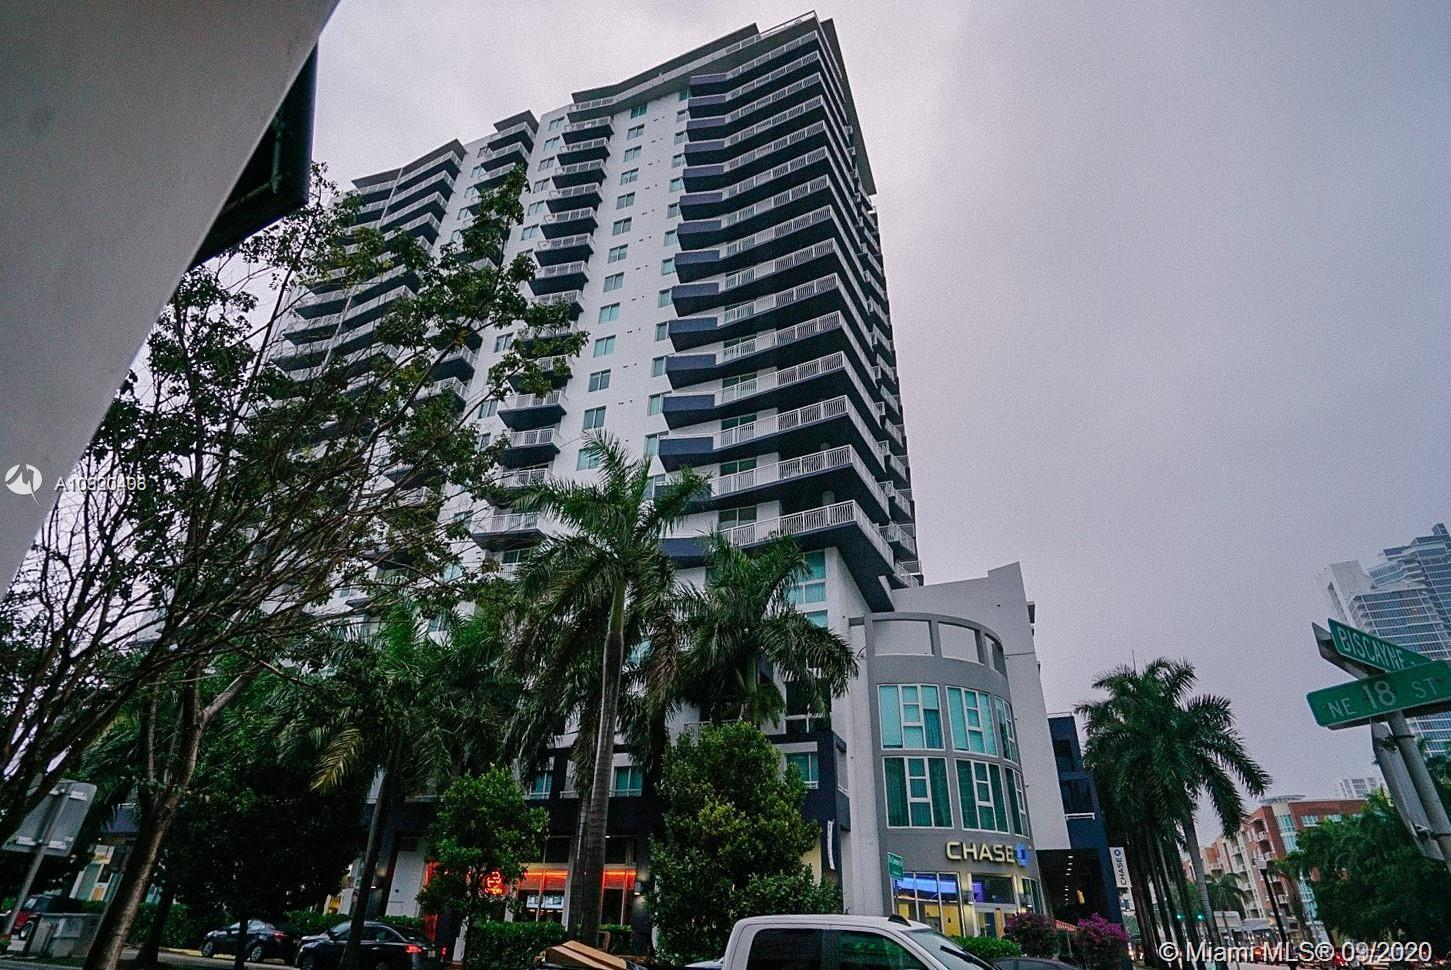 GREAT OPPORTUNITY, SPECTACULAR VIEW OF CITY AND BAY FROM THIS 14 TH FLOOR UNIT. THIS PROPERTYFEATURE